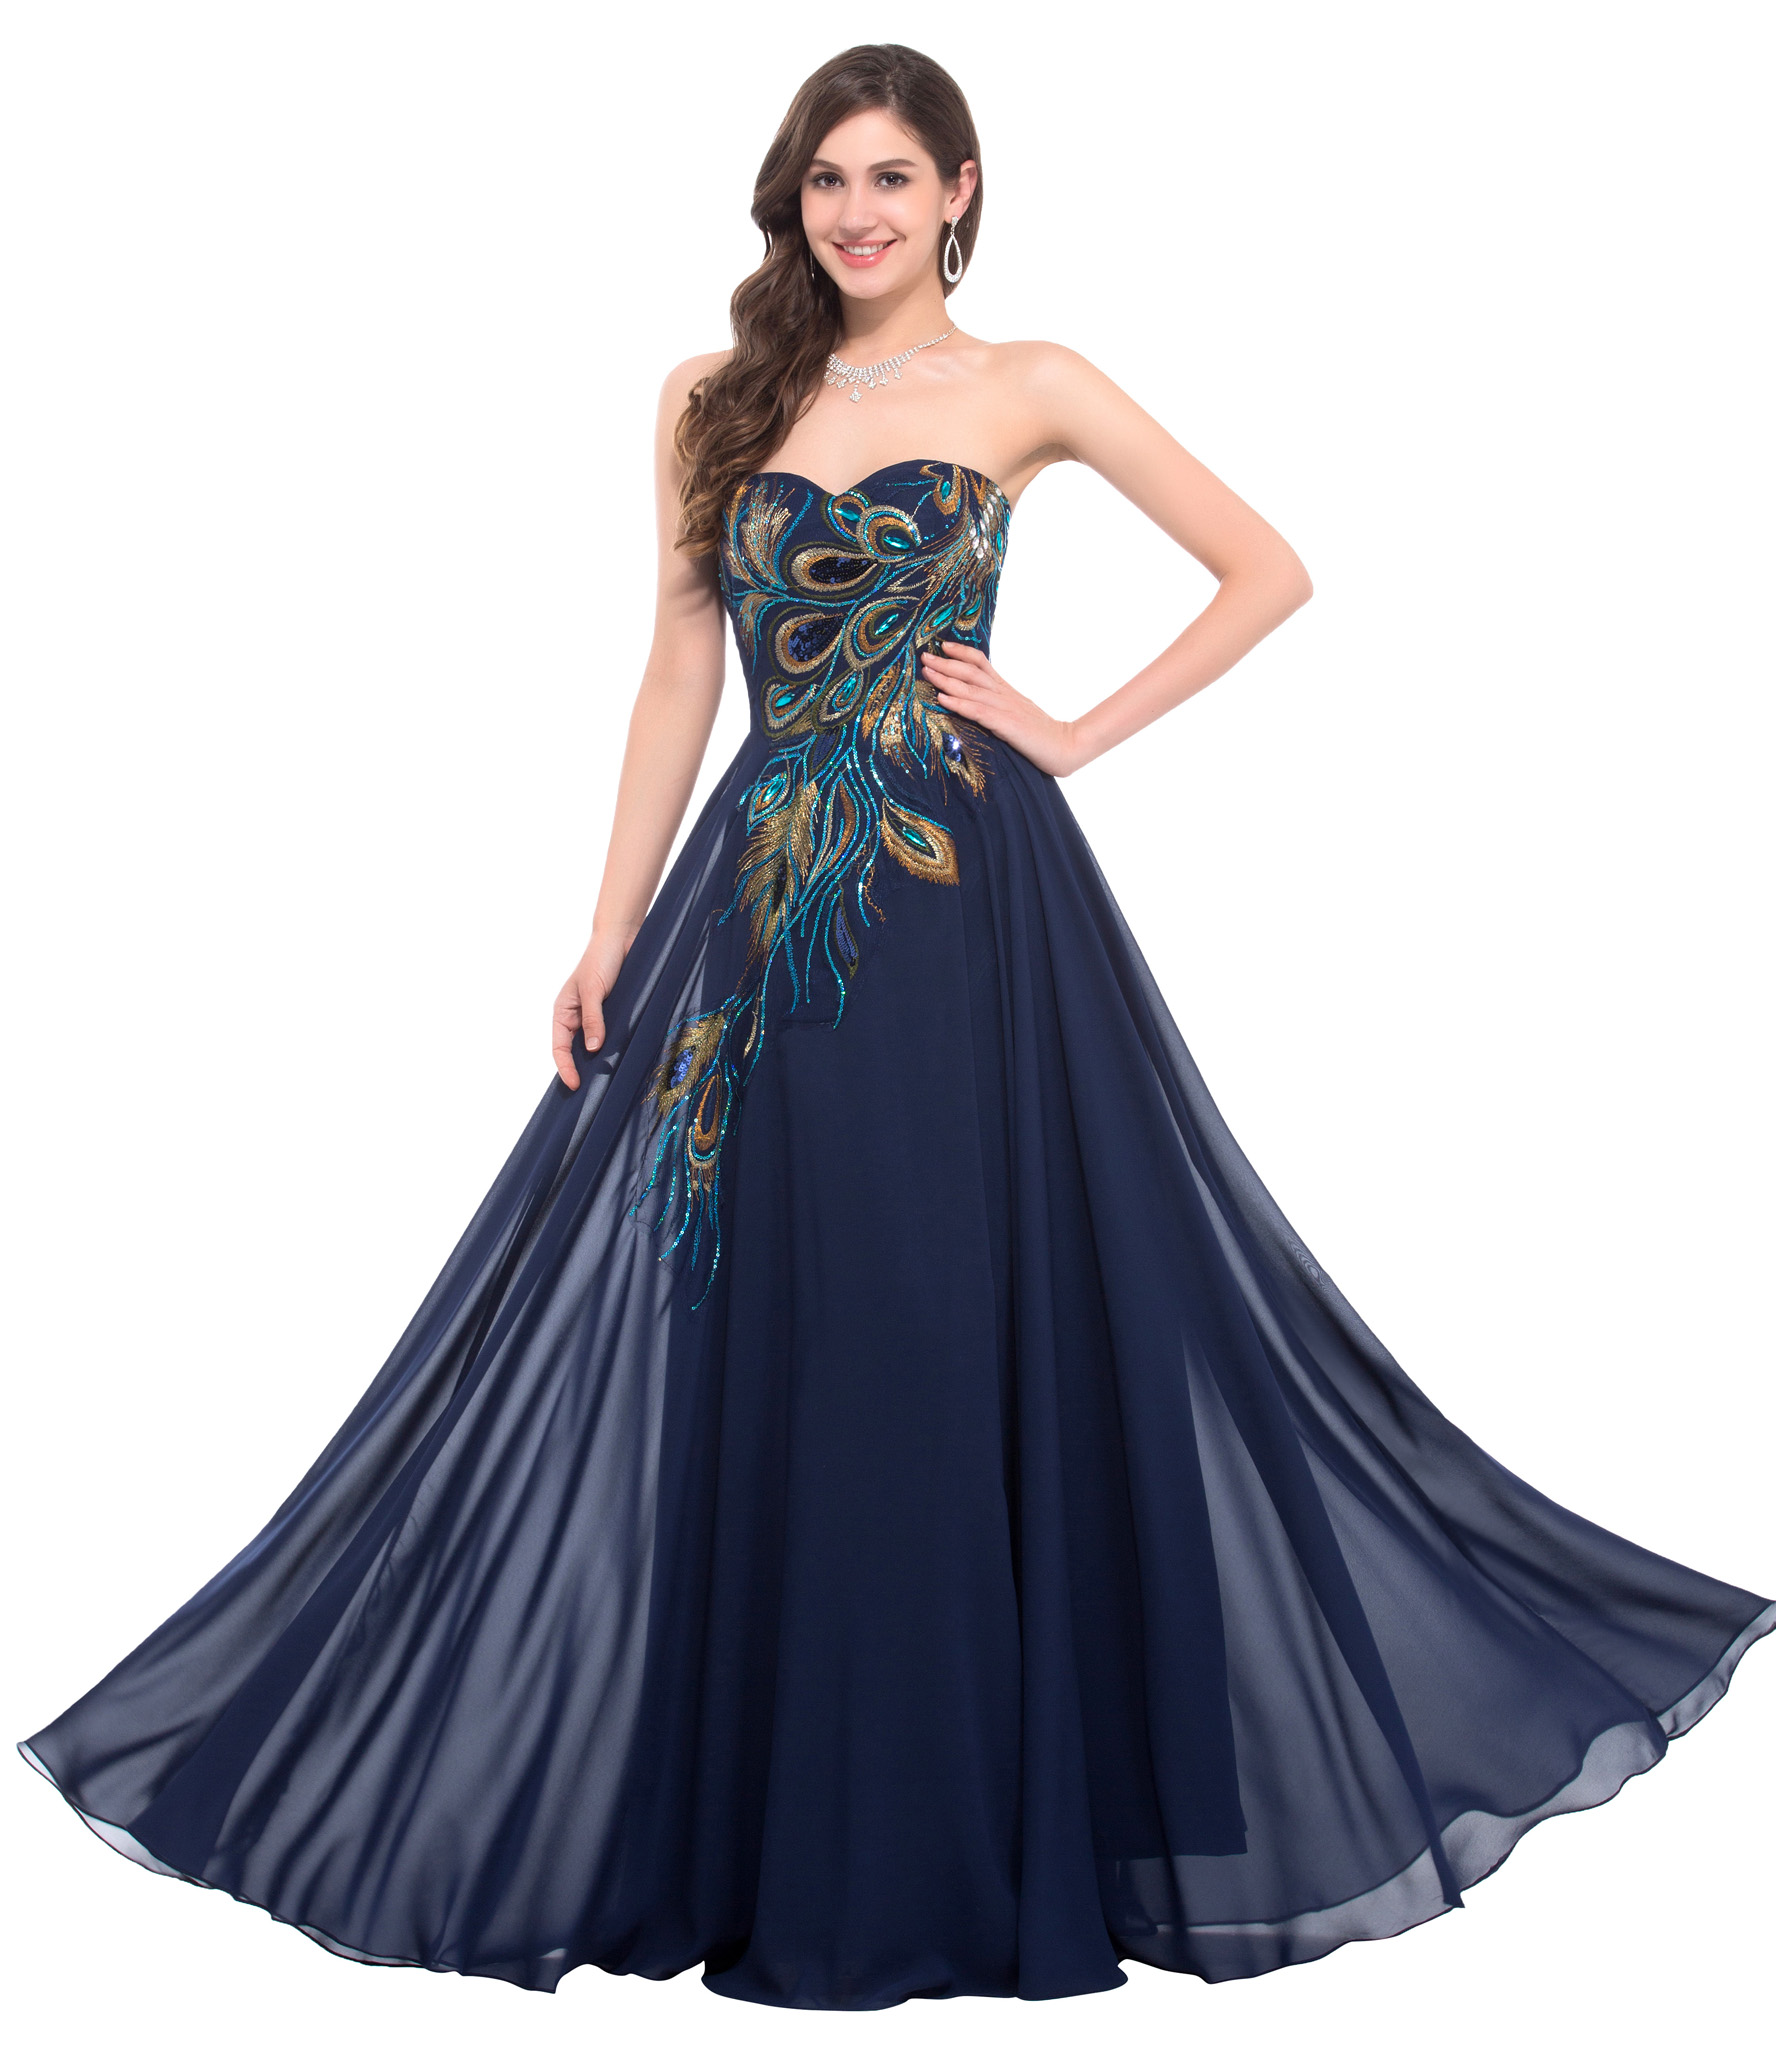 Fitted Larissa Satin Prom Dress with Beaded Net Bodice and